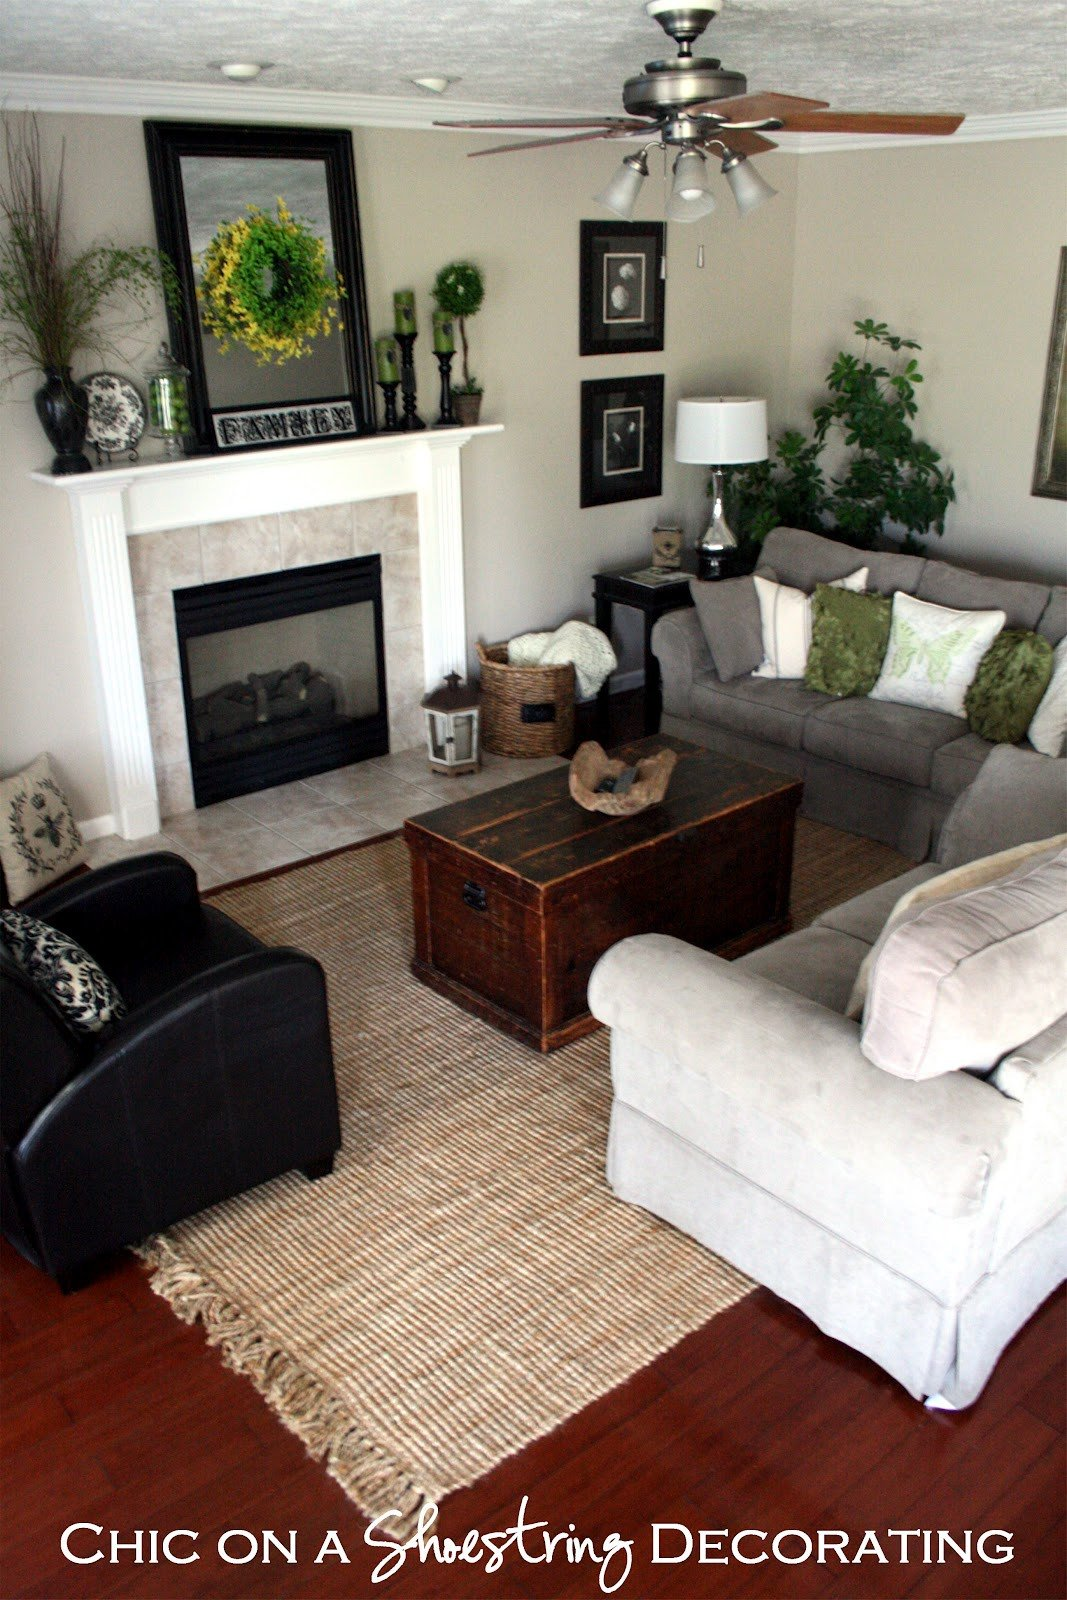 Rug for Living Room Ideas Luxury Loveolympiajune so What Did I Do with the Rug